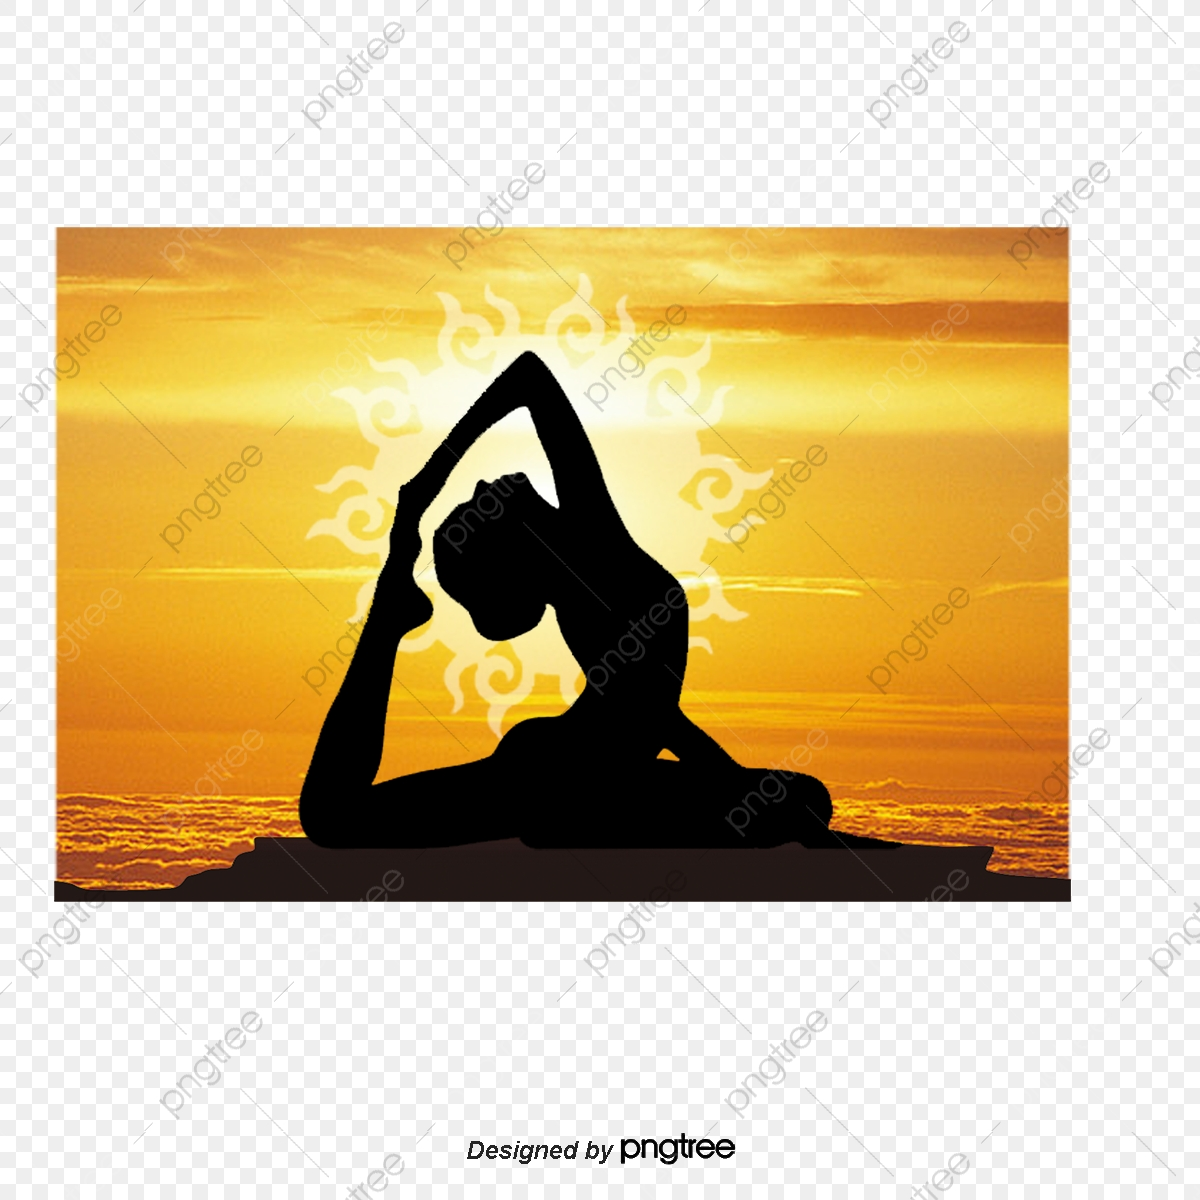 Vector Yoga Dance Movement Yoga Vector Png Transparent Clipart Image And Psd File For Free Download